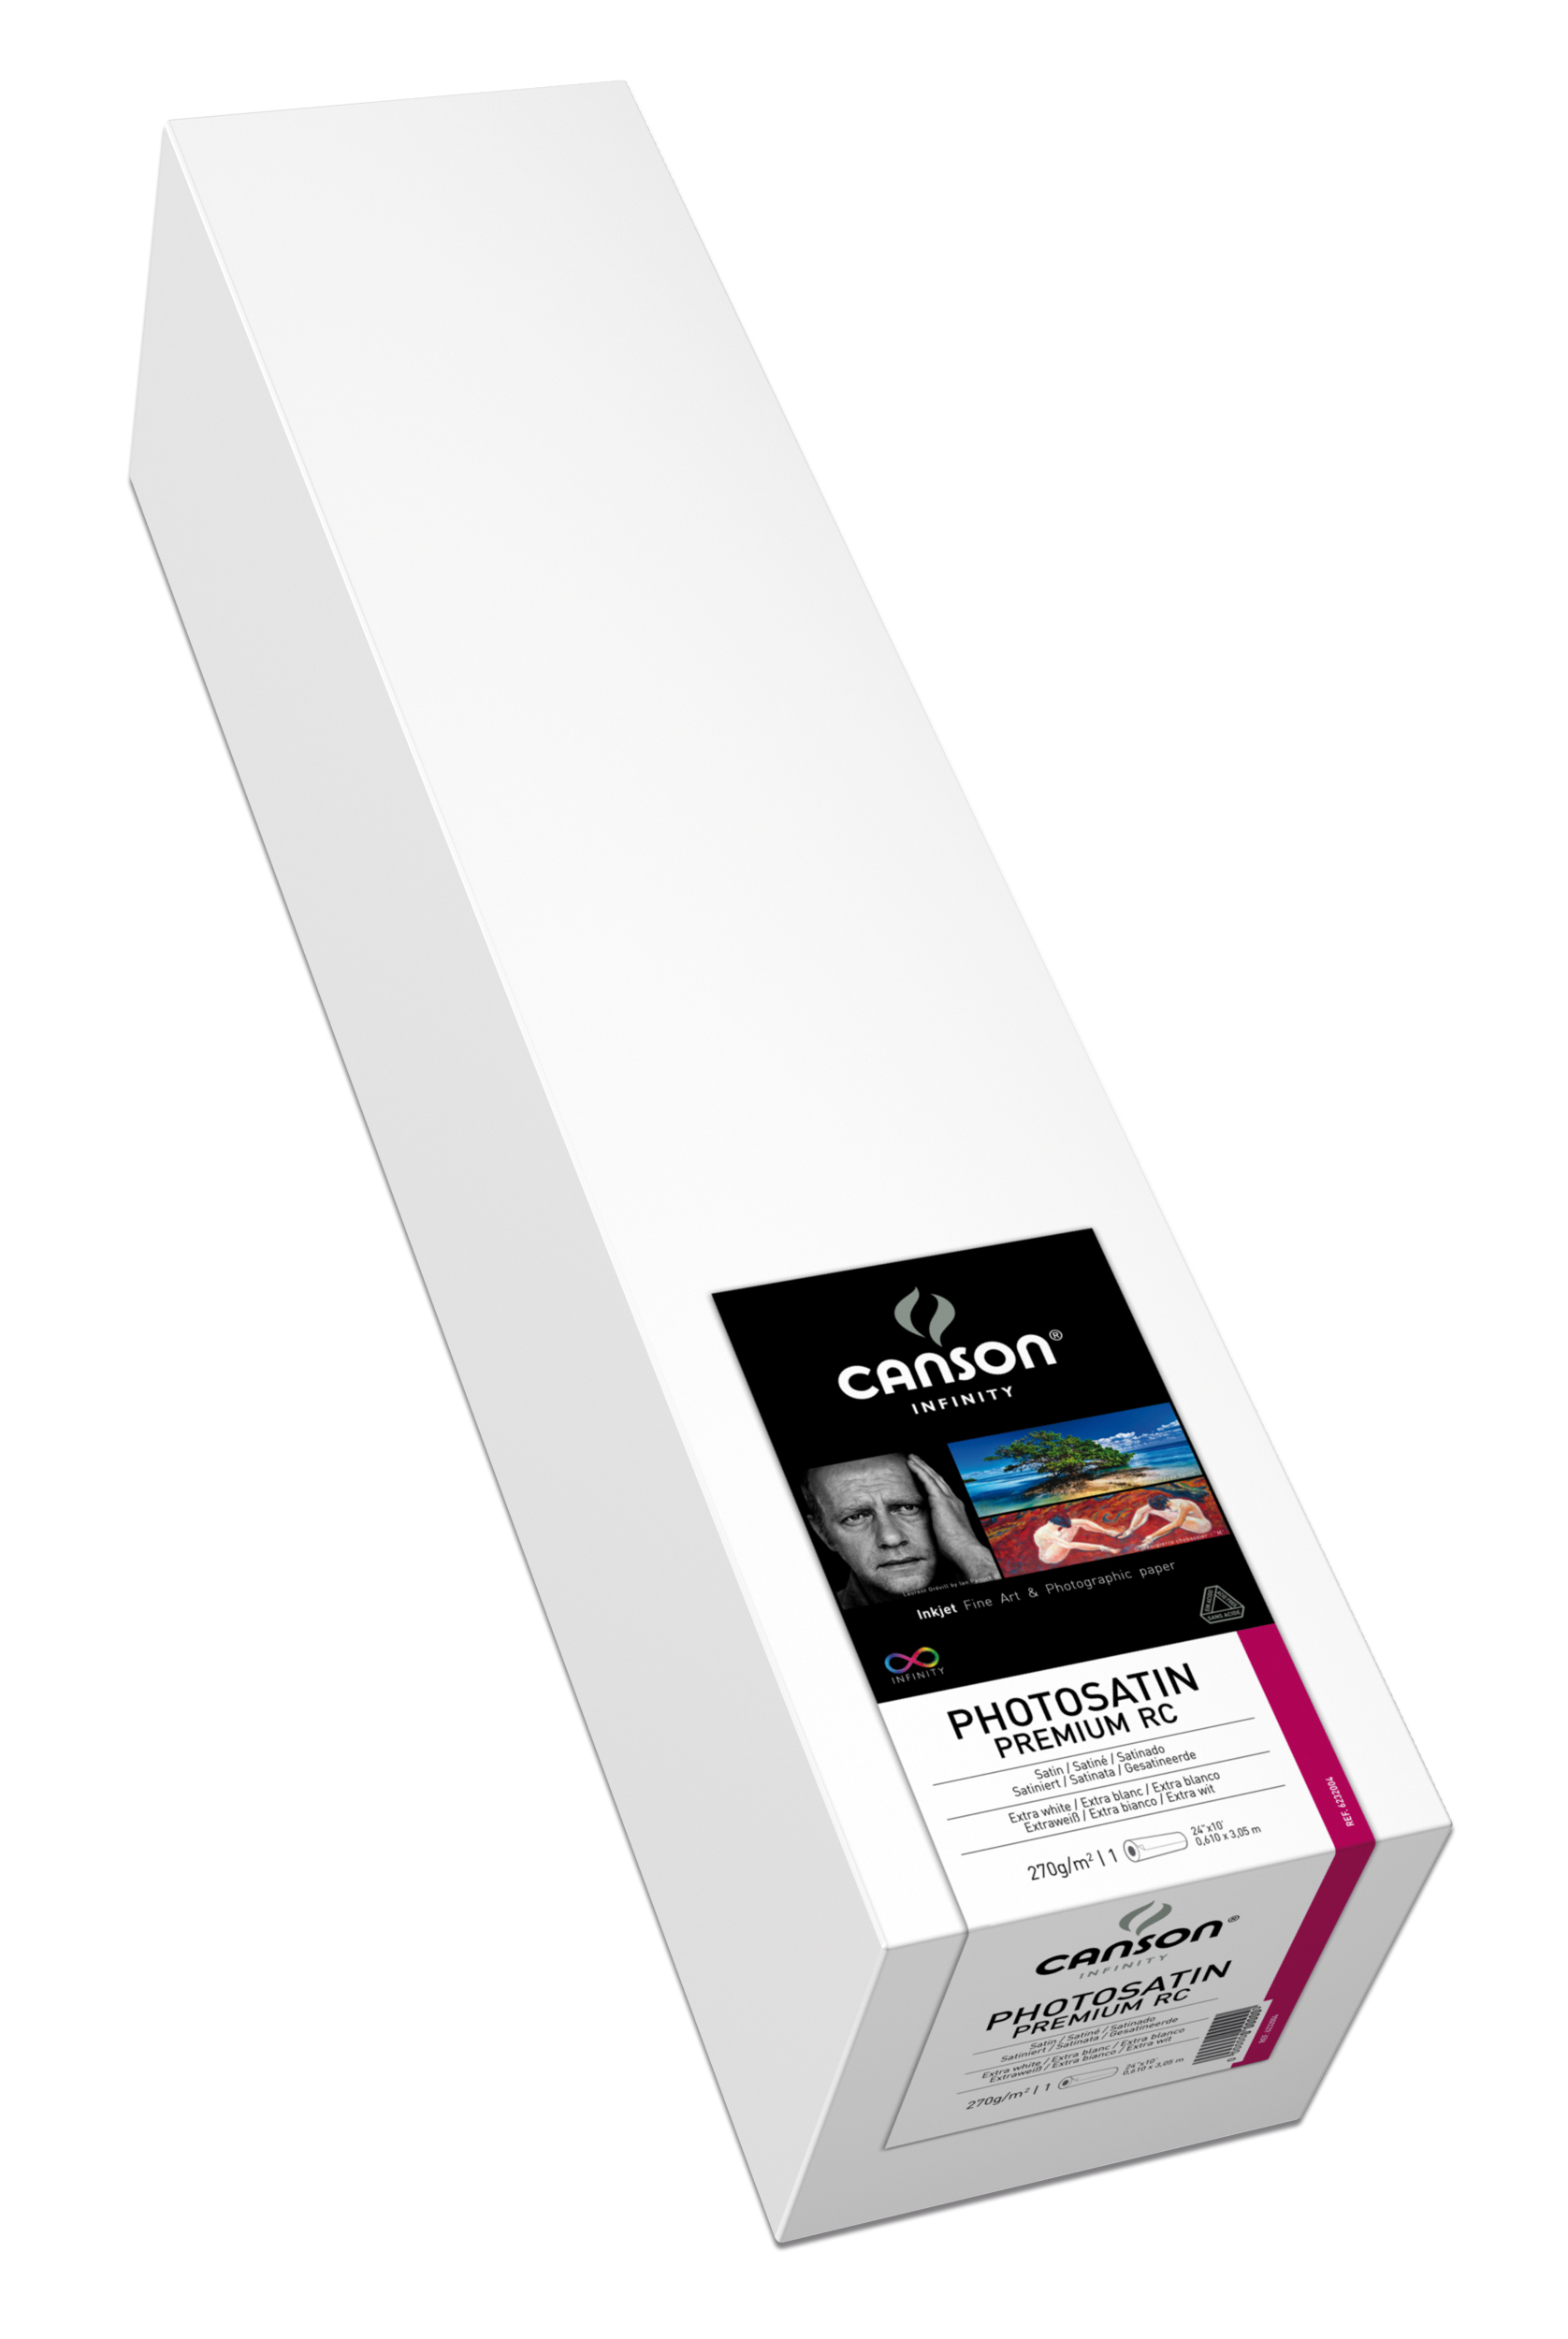 "Canson PhotoSatin Premium RC 270gsm 17"" x 100' Roll"